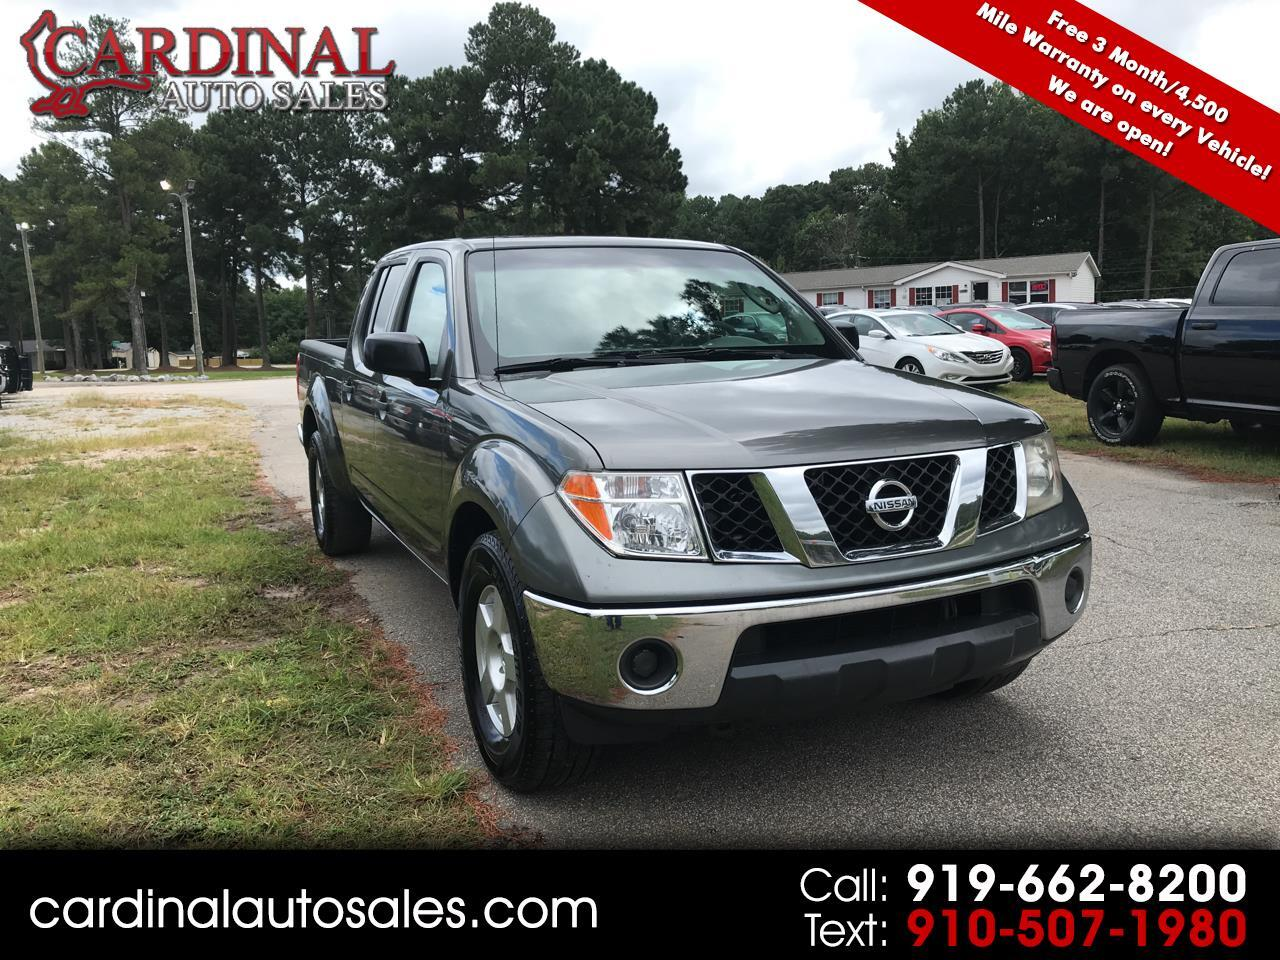 used cars for sale raleigh nc 27603 cardinal auto sales inc raleigh nc 27603 cardinal auto sales